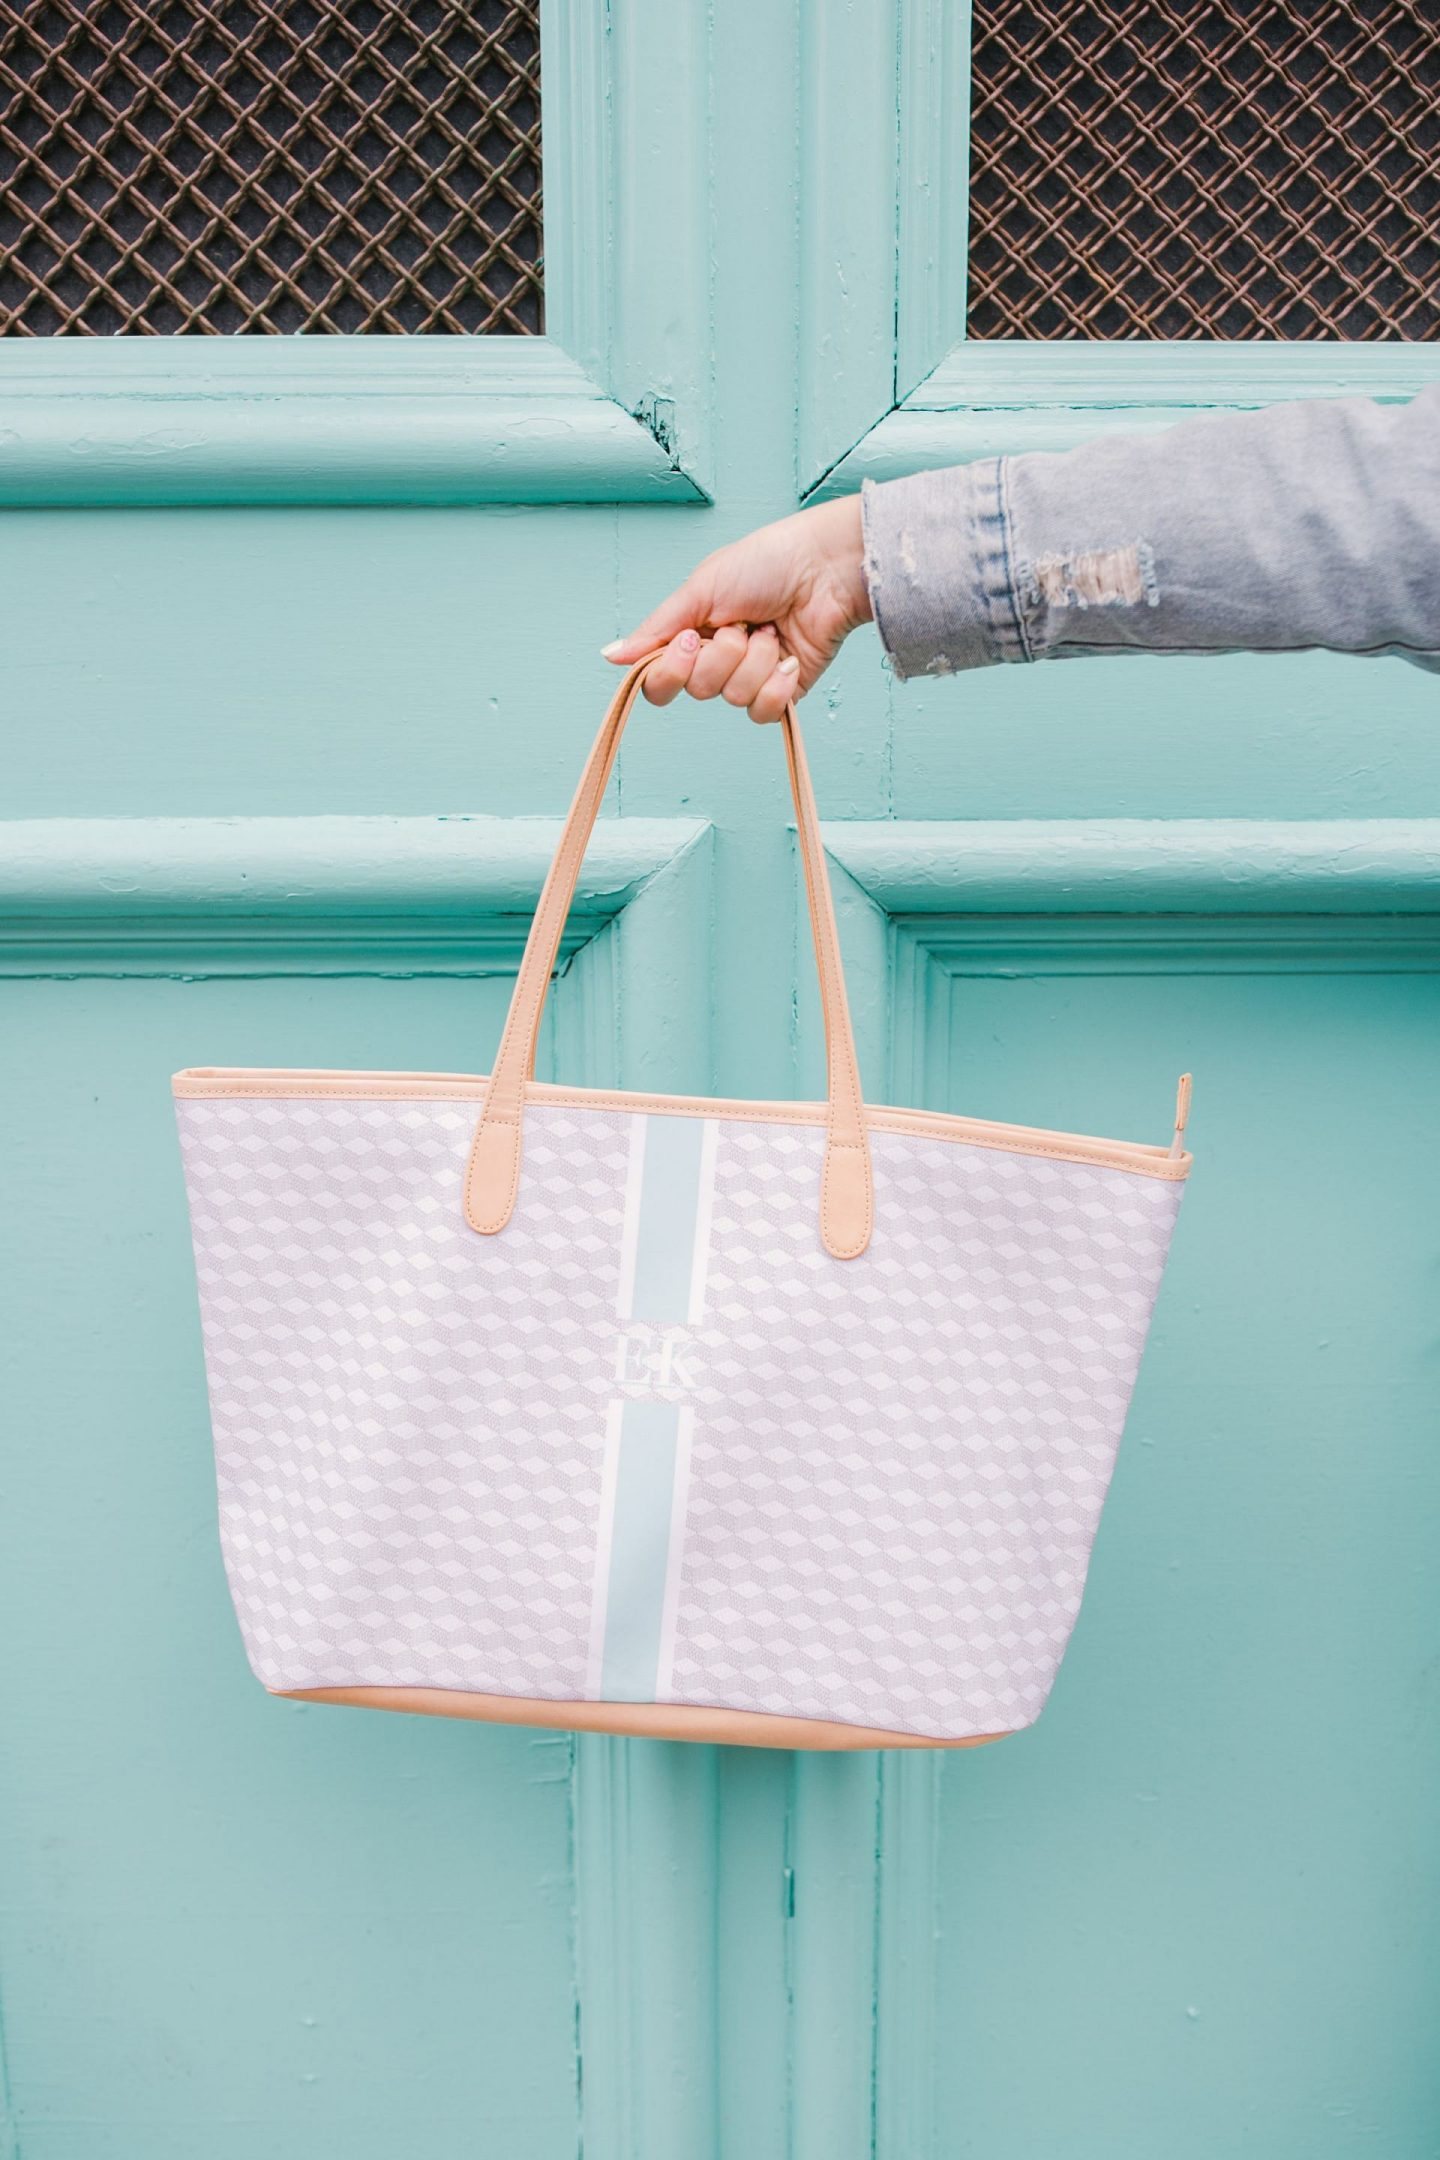 Bijuleni holding Barrington Gifts St. Annes monogrammed tote